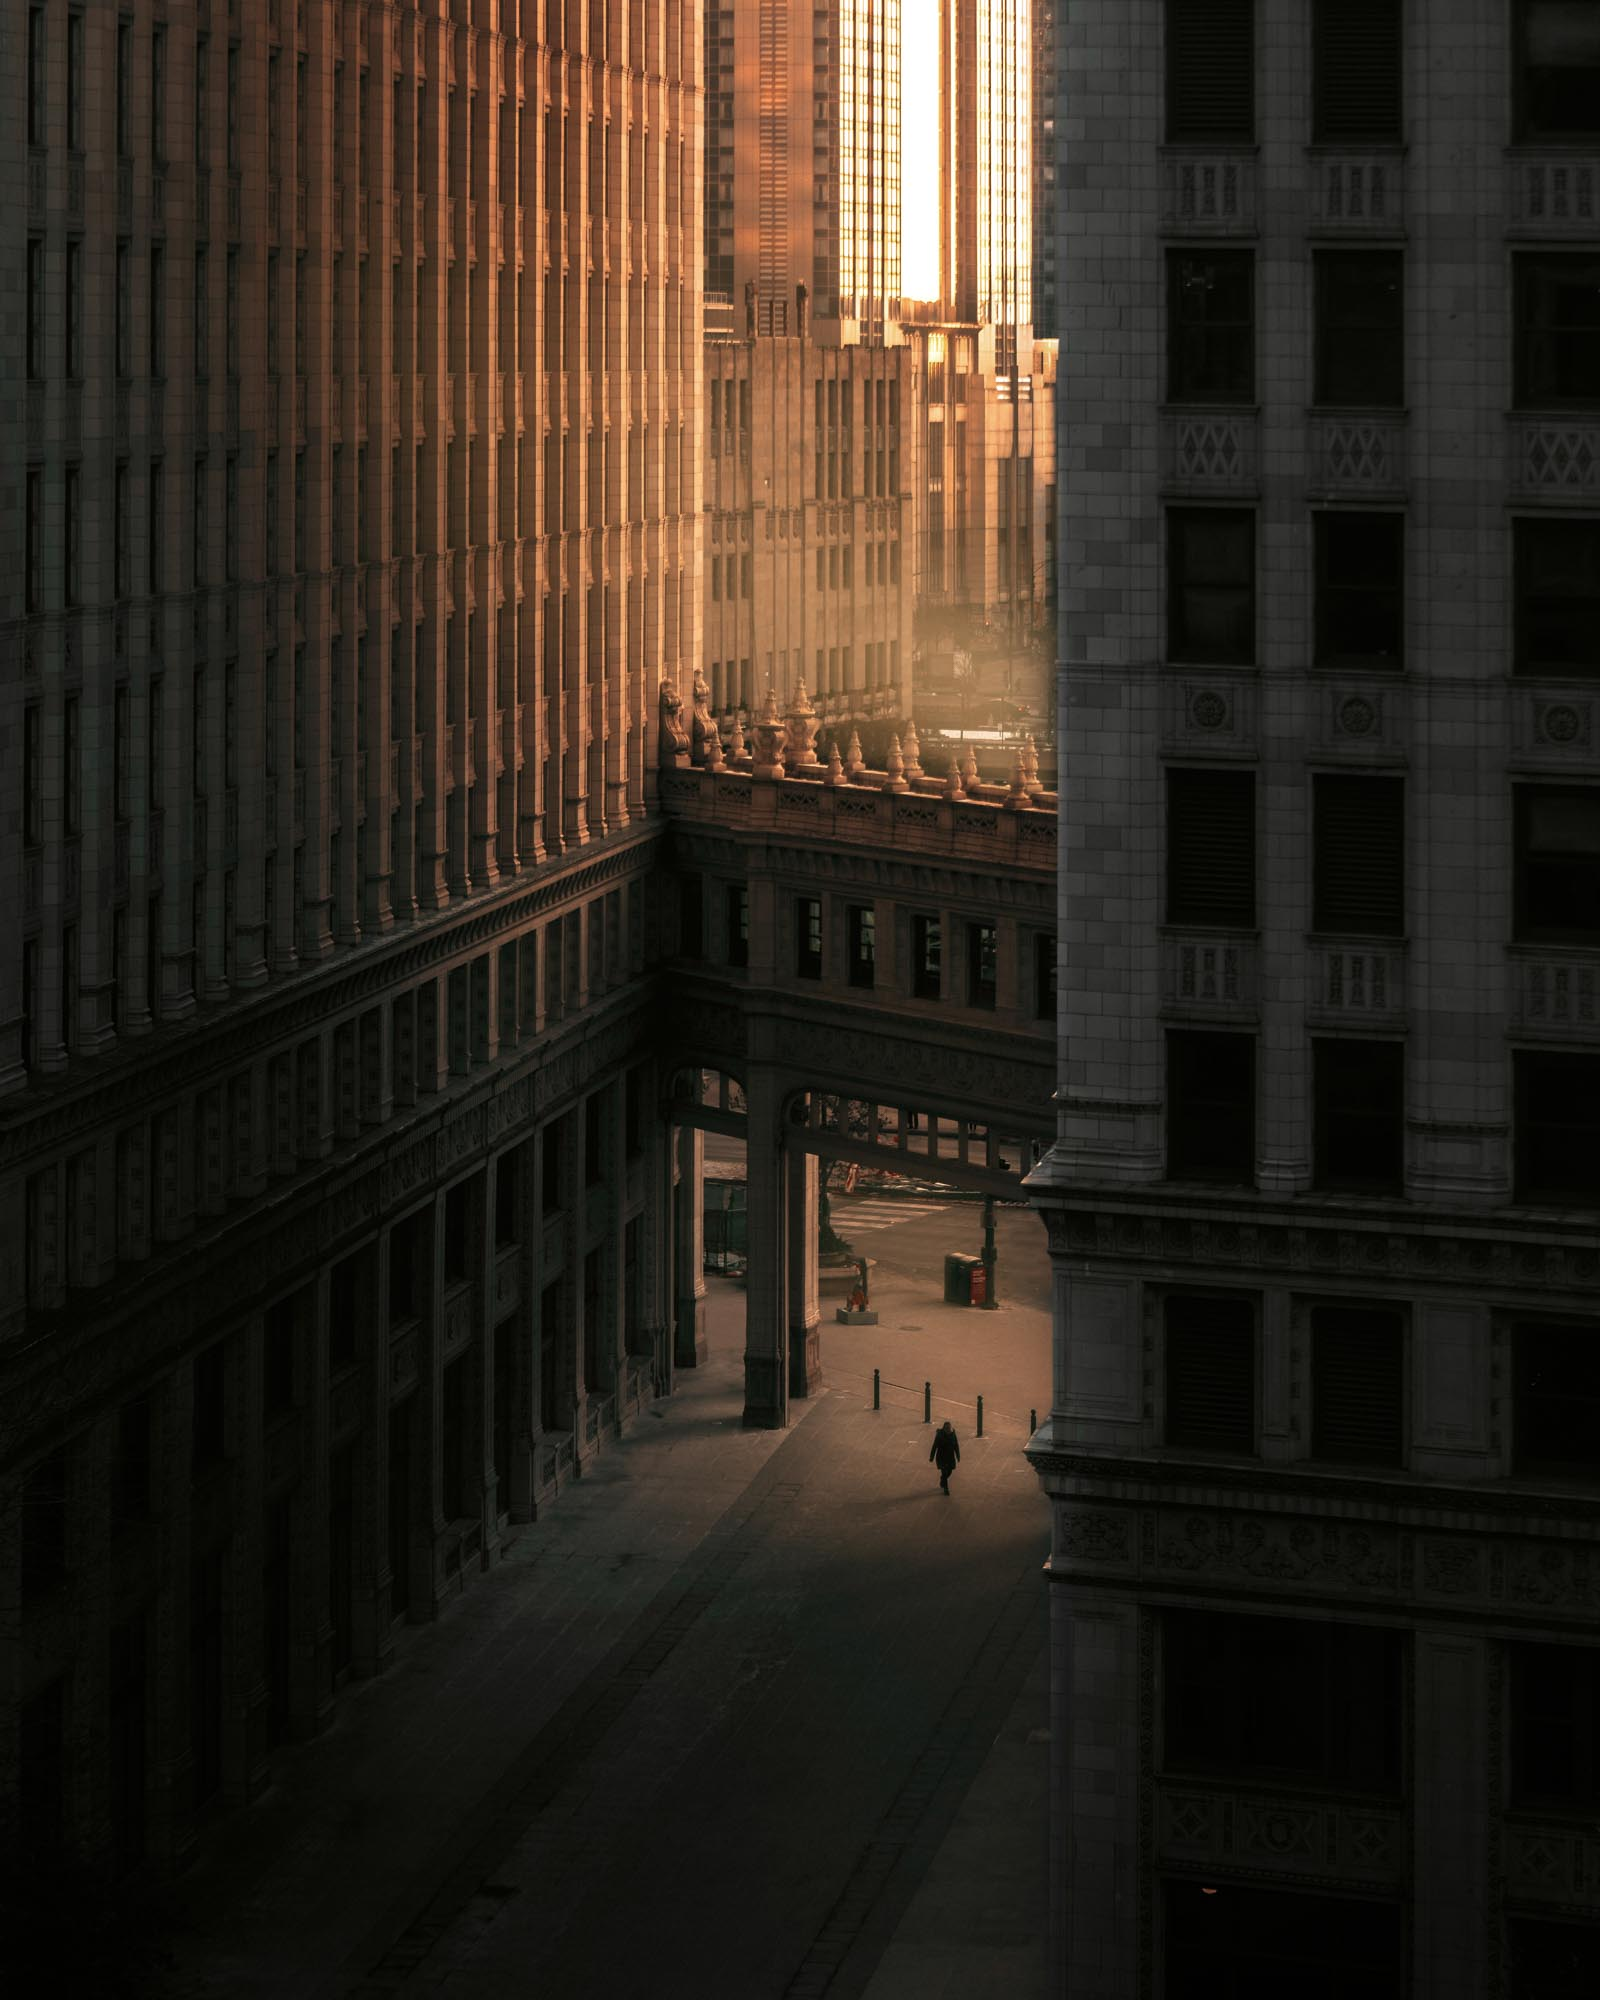 A man makes his morning commute in the golden light of morning, Chicago